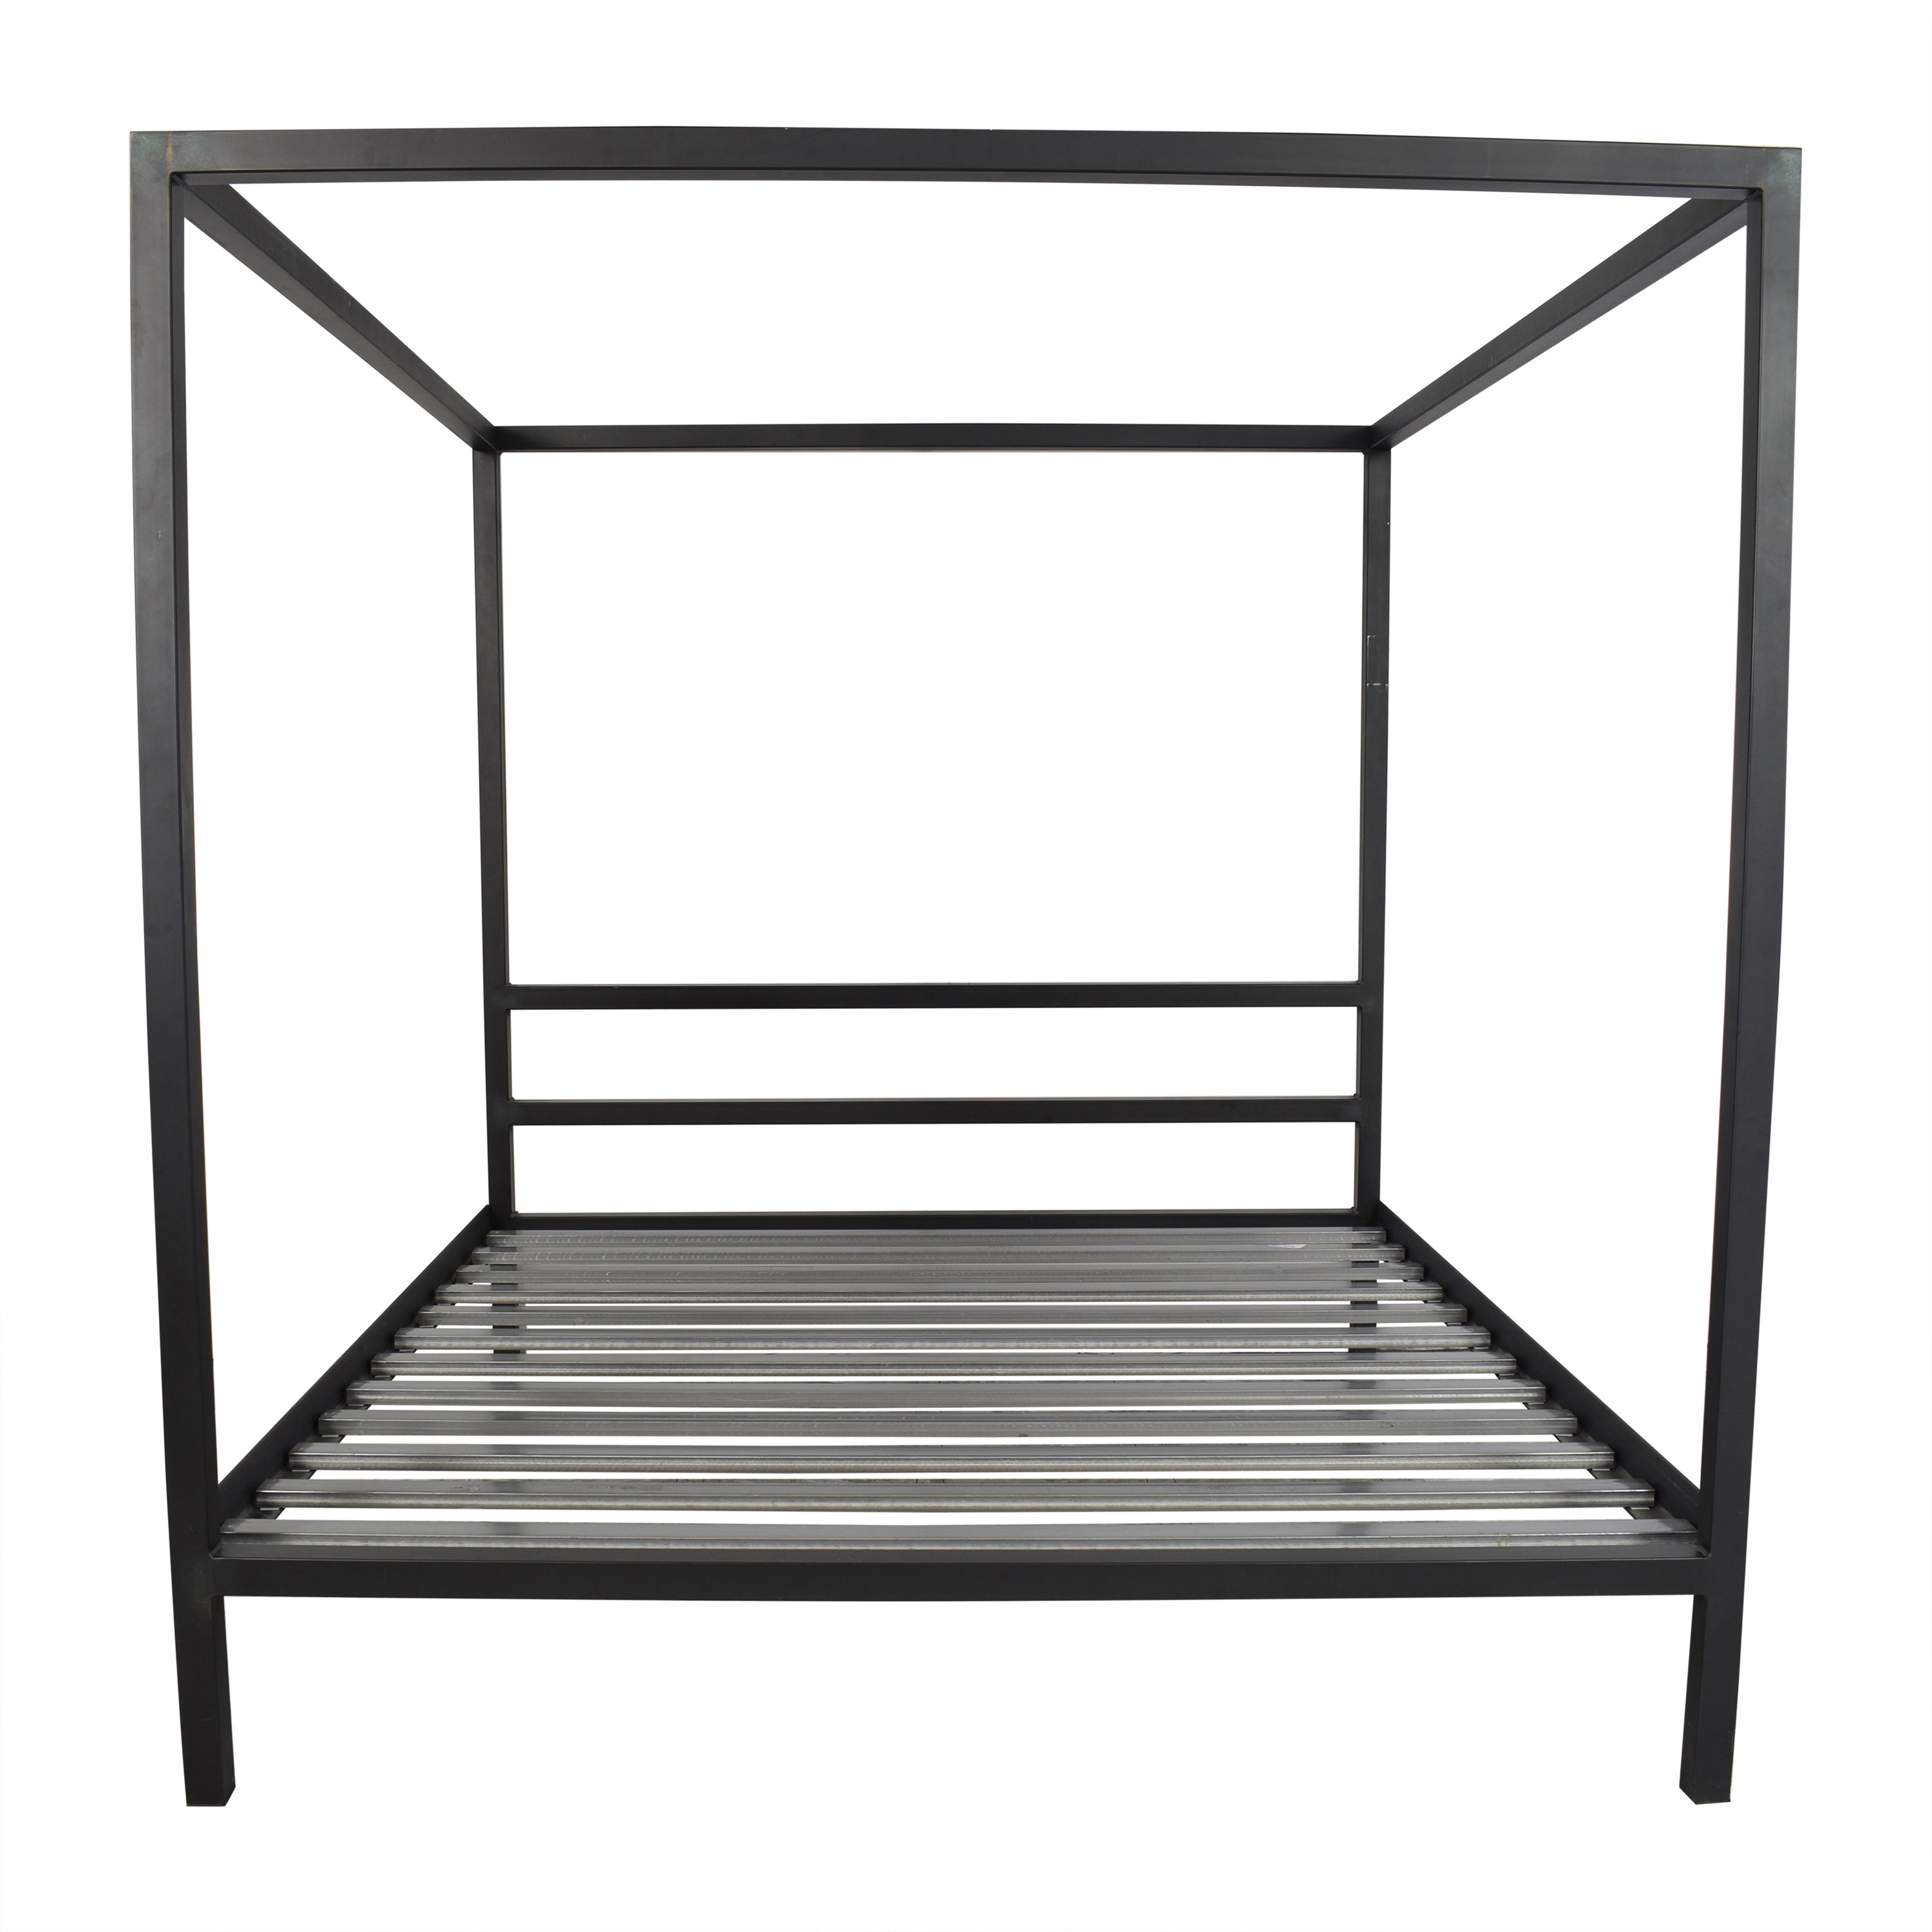 Room & Board Room & Board Architecture Canopy King Bed Frame second hand